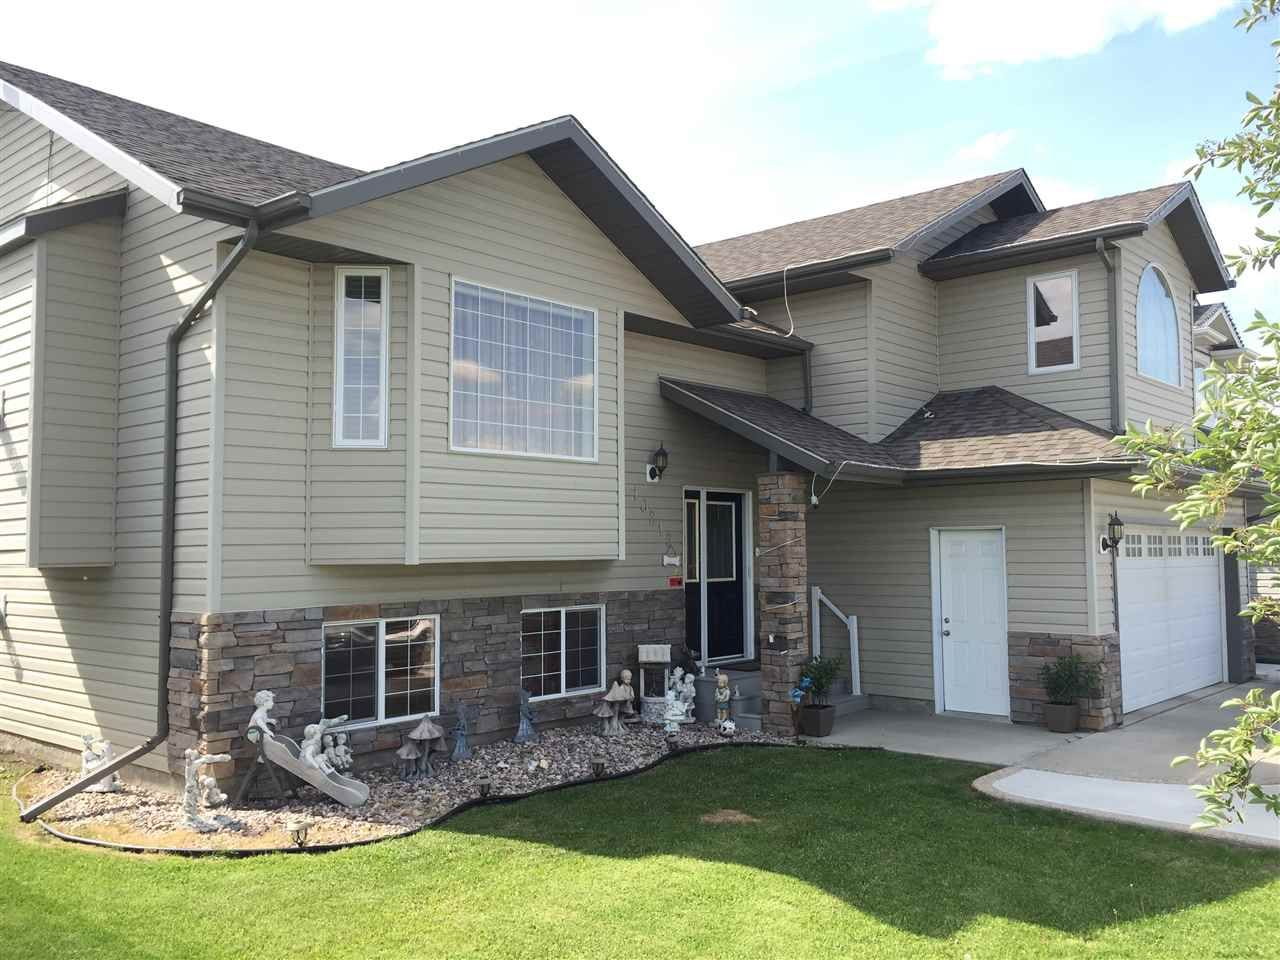 Main Photo: 10212 110 Avenue: Westlock House for sale : MLS®# E4221337